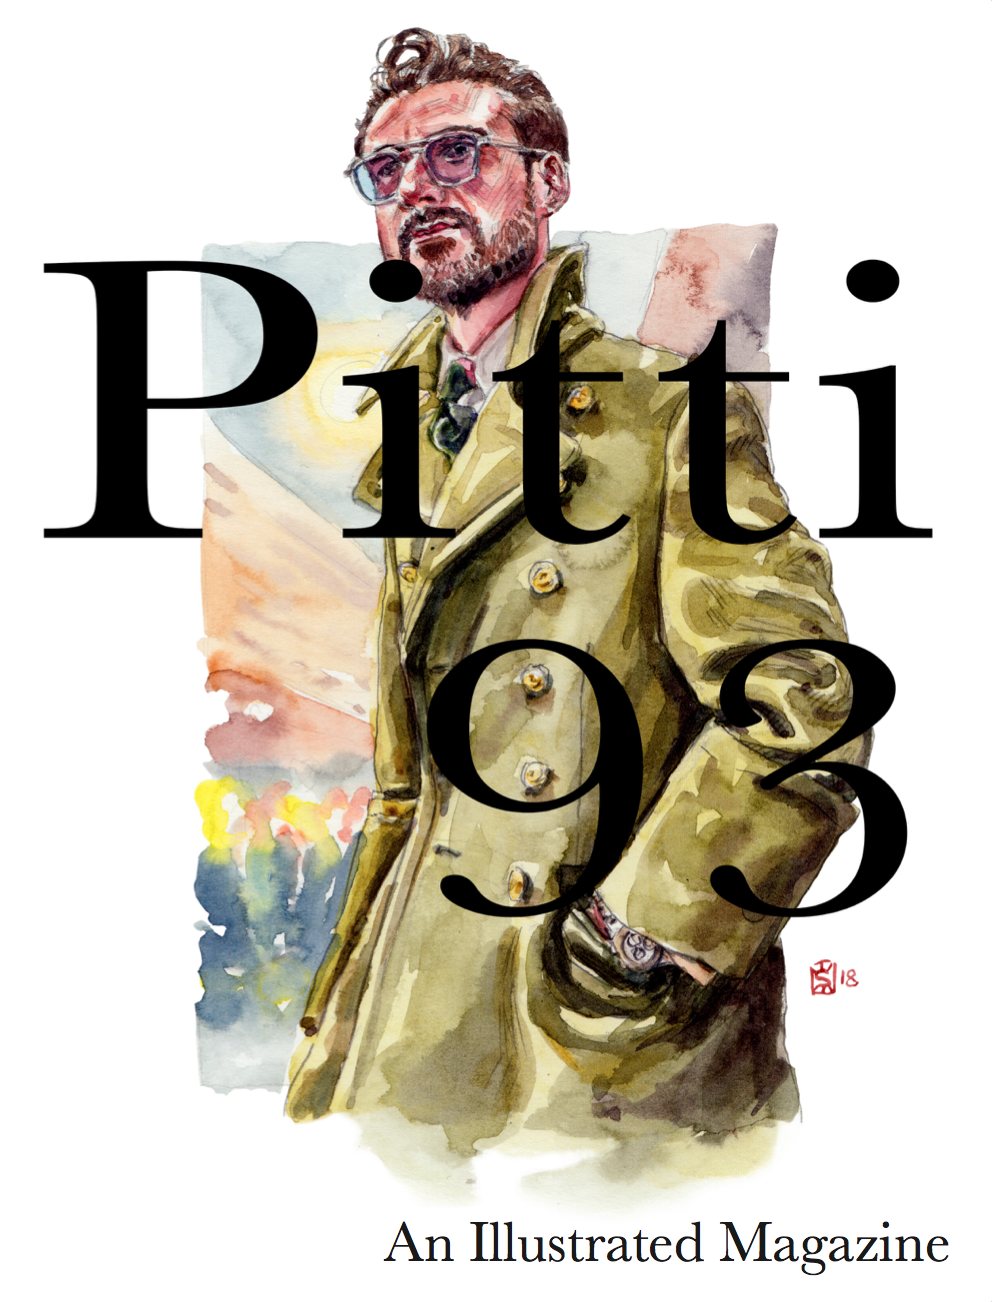 Pitti 93 Illustrated Mag. Common Cover Edition. $18 - A Sunflowerman ProjectThis Magazine Publication features the style, the men and the women of Pitti Uomo, season 93.-Not Signed Edition-No original Sunflowerman Sketch-Shipped by Blurb